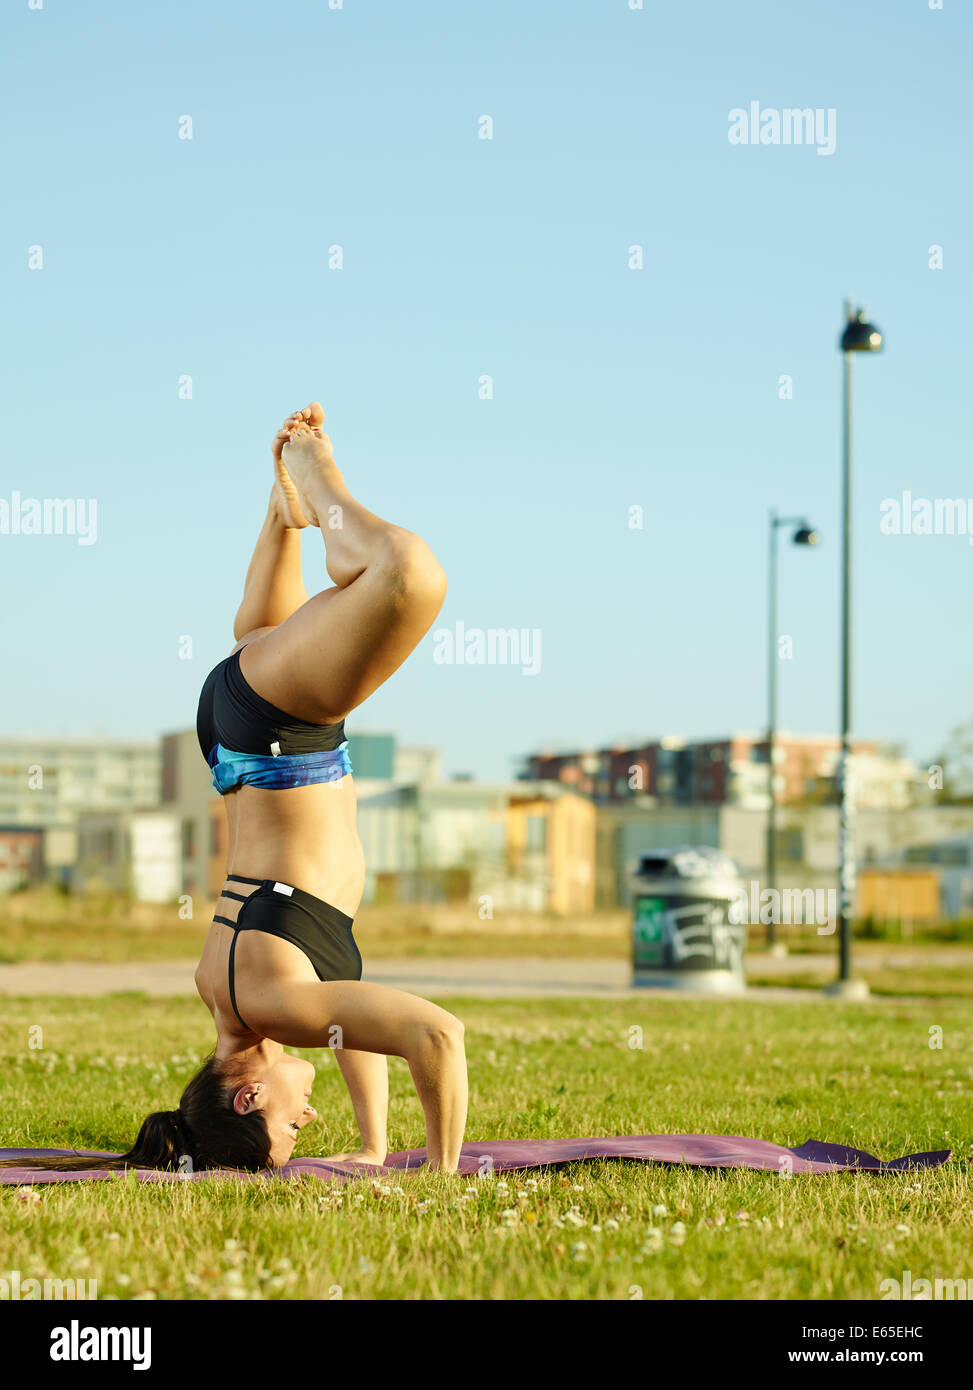 Active fitness woman working out in the park early in the morning, urban background - Stock Image